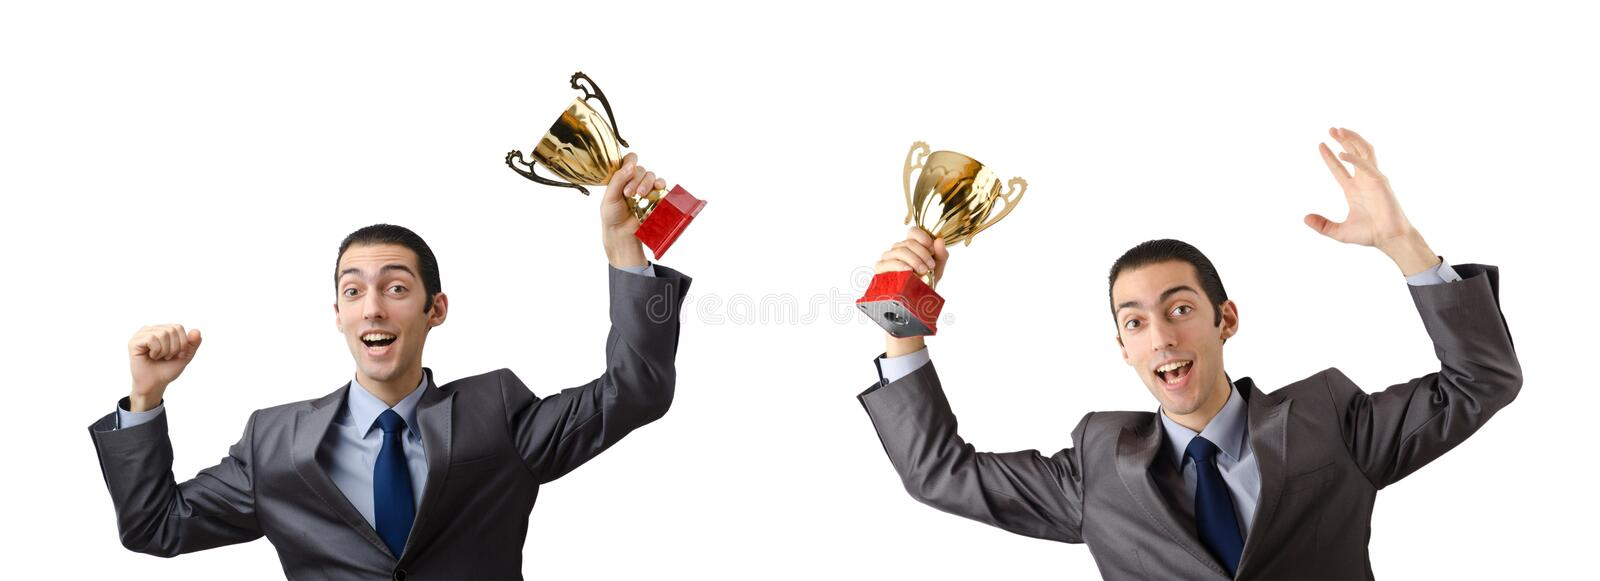 The collage of businessman receiving award. Collage of businessman receiving award royalty free stock photography